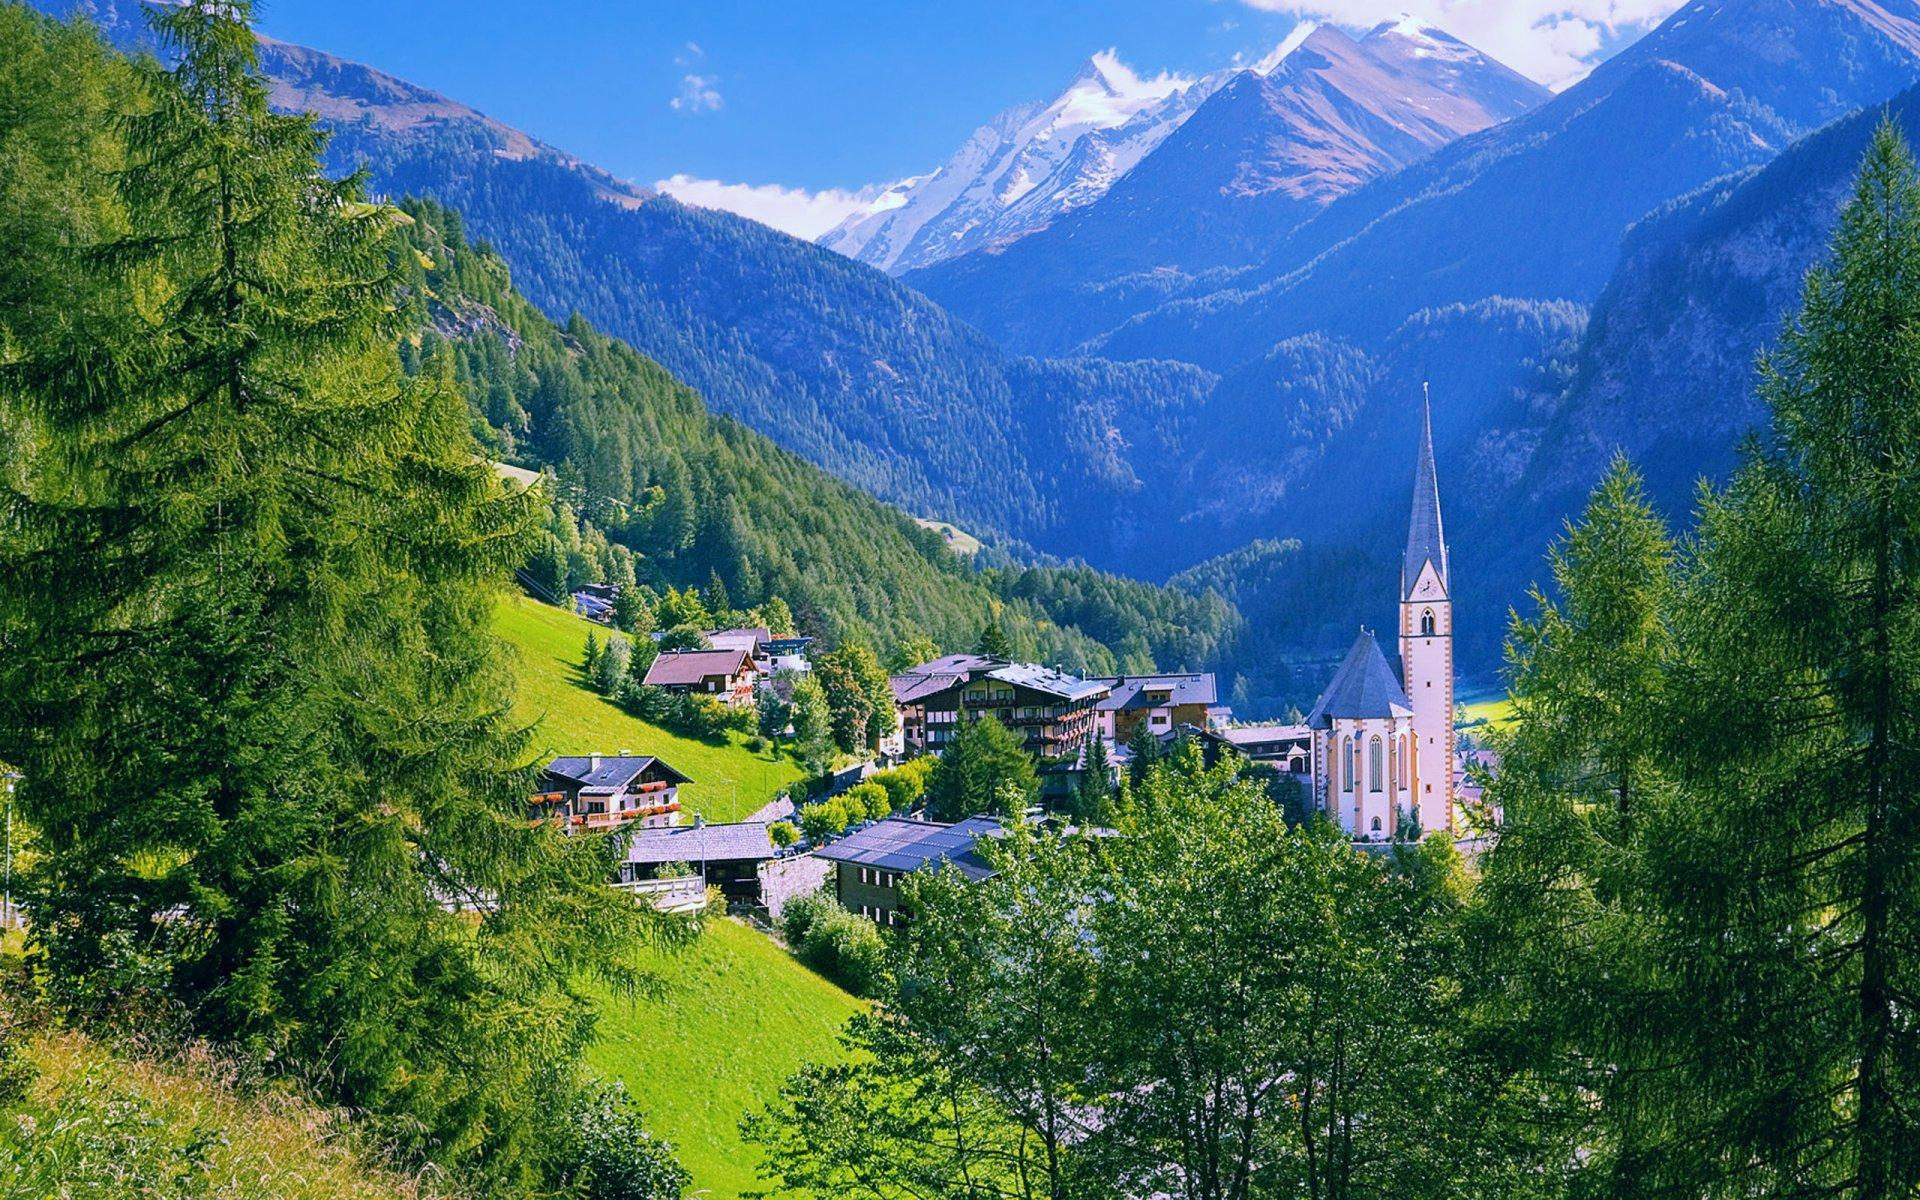 Image of the Austrian alps